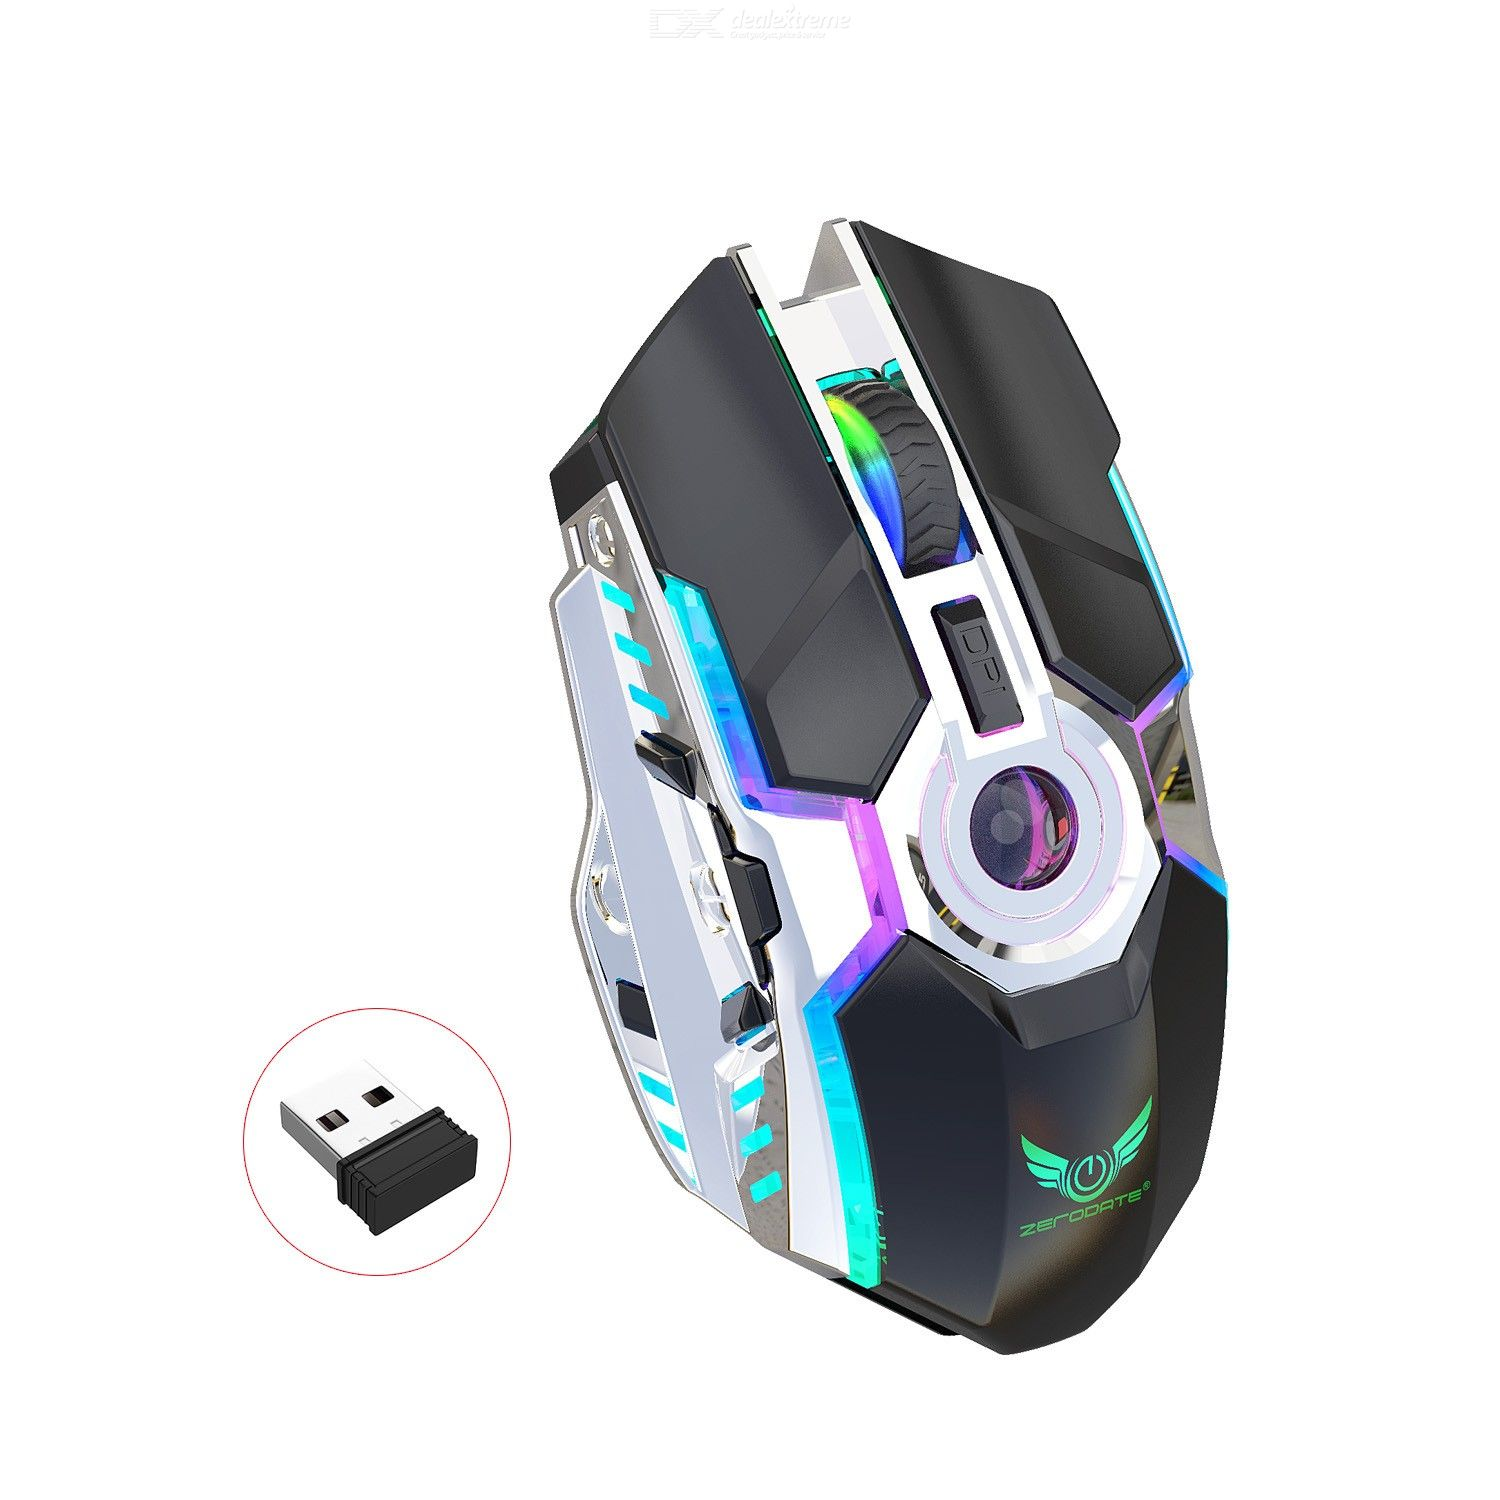 T30B Wireless Mouse USB Rechargeable RGB Illuminated Computer Mouse 2400DPI 2.4GHz Ergonomic Design Optical Mouse